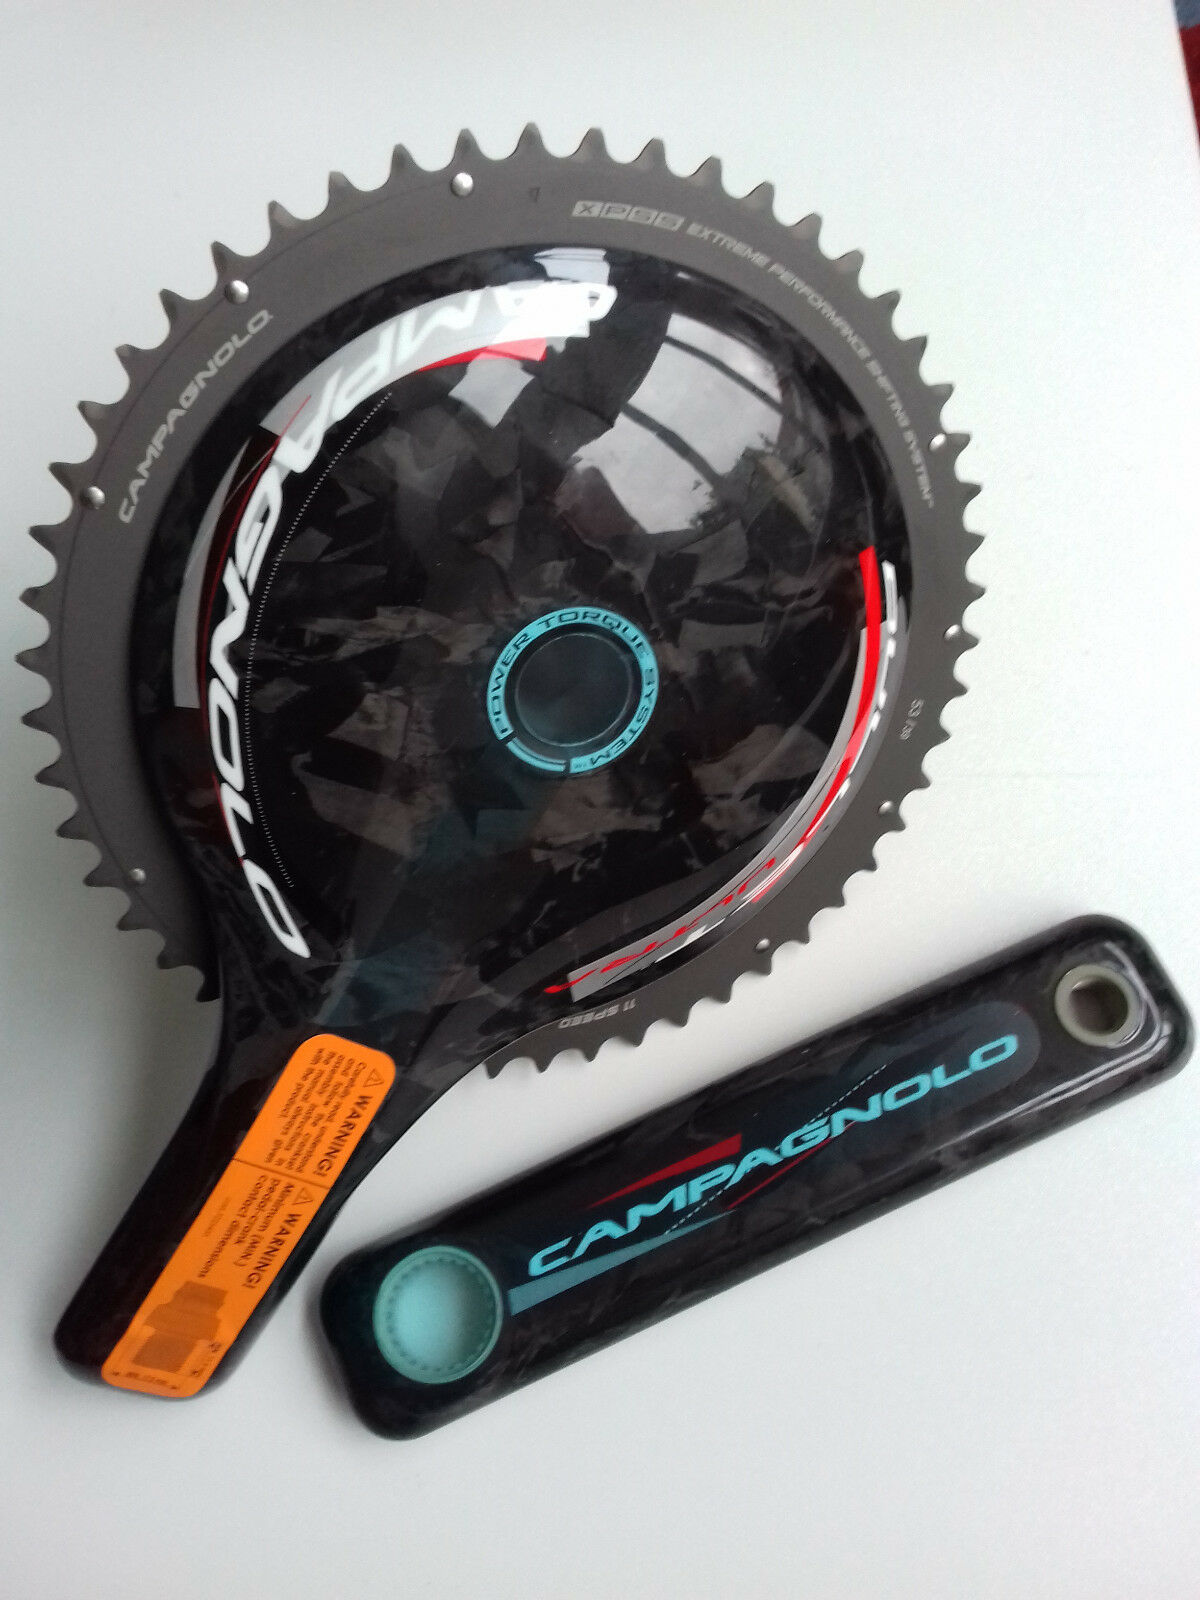 Pedalier campagnolo Bullet Bullet Bullet Ultra CT carbone neuf cea9f0